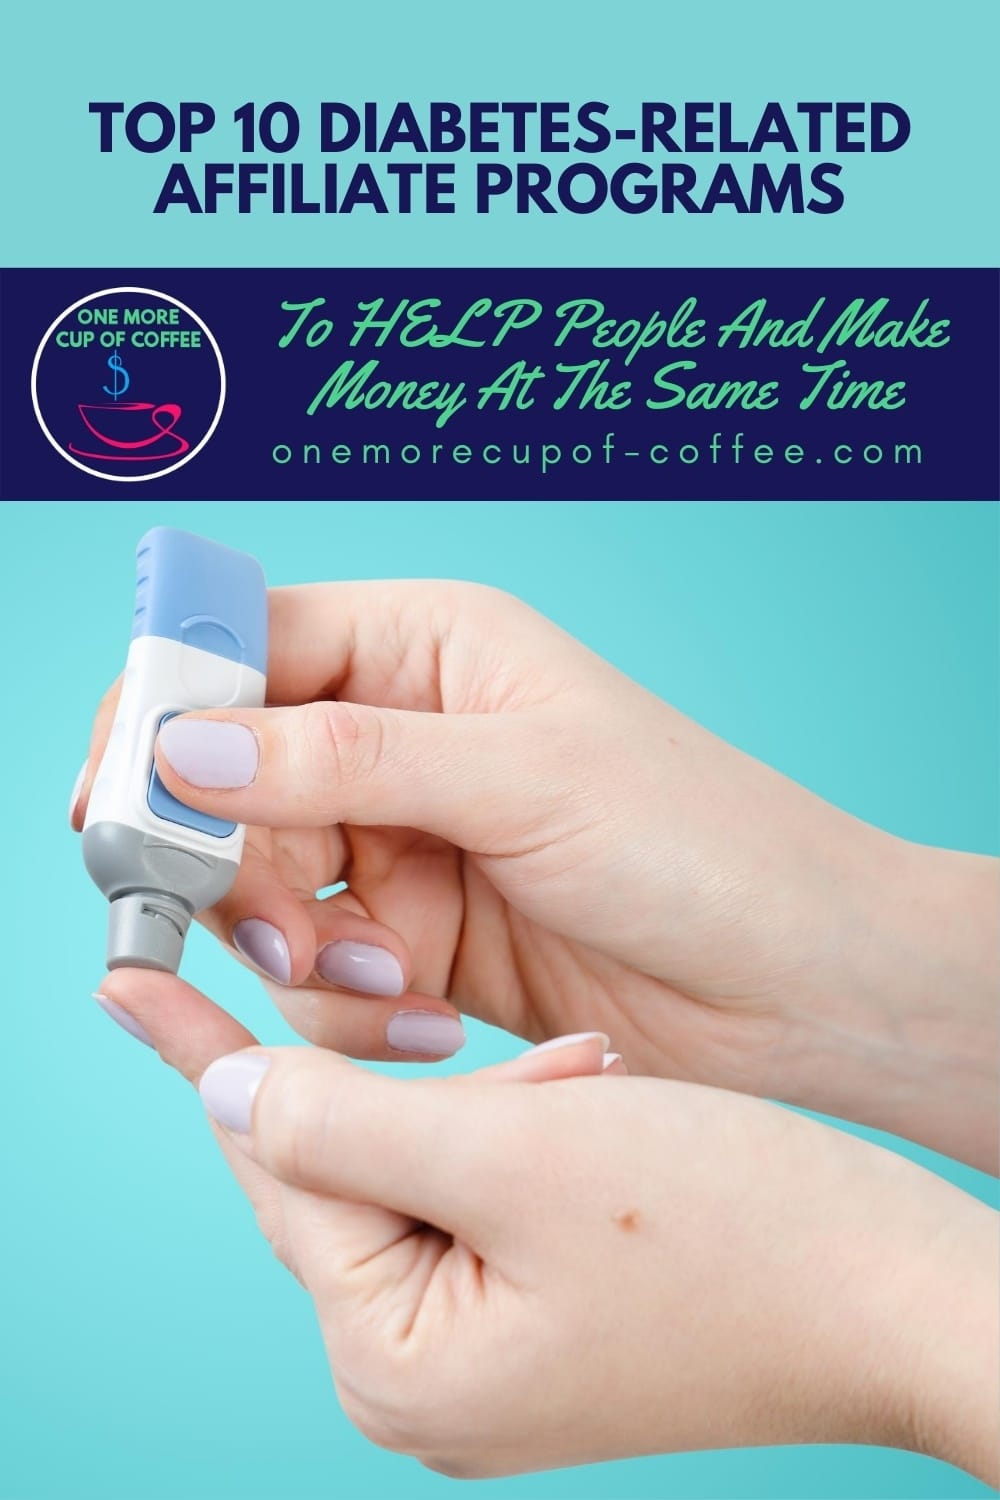 """closeup image of finger getting prick with glucose meter against a sky-blue background, with text overlay """"Top 10 Diabetes-Related Affiliate Programs To HELP People And Make Money At The Same Time"""""""